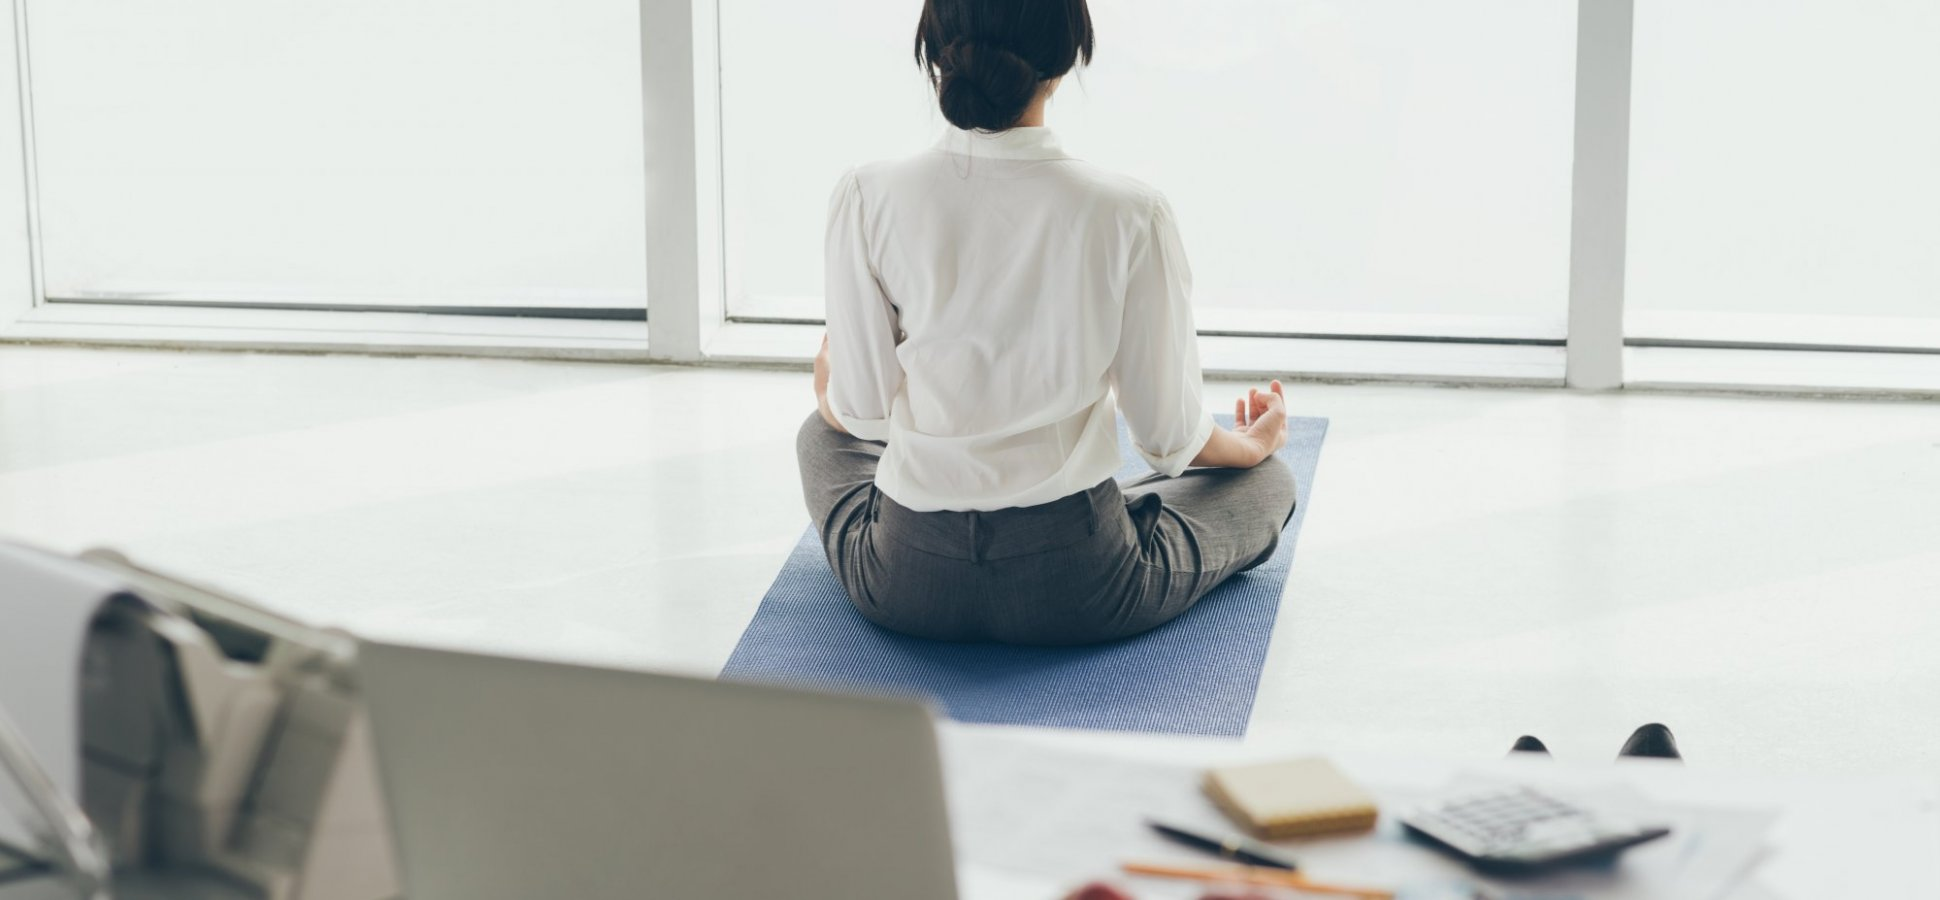 5 Mindfulness Apps to Help You Stay Calm and Focused During Stressful Times